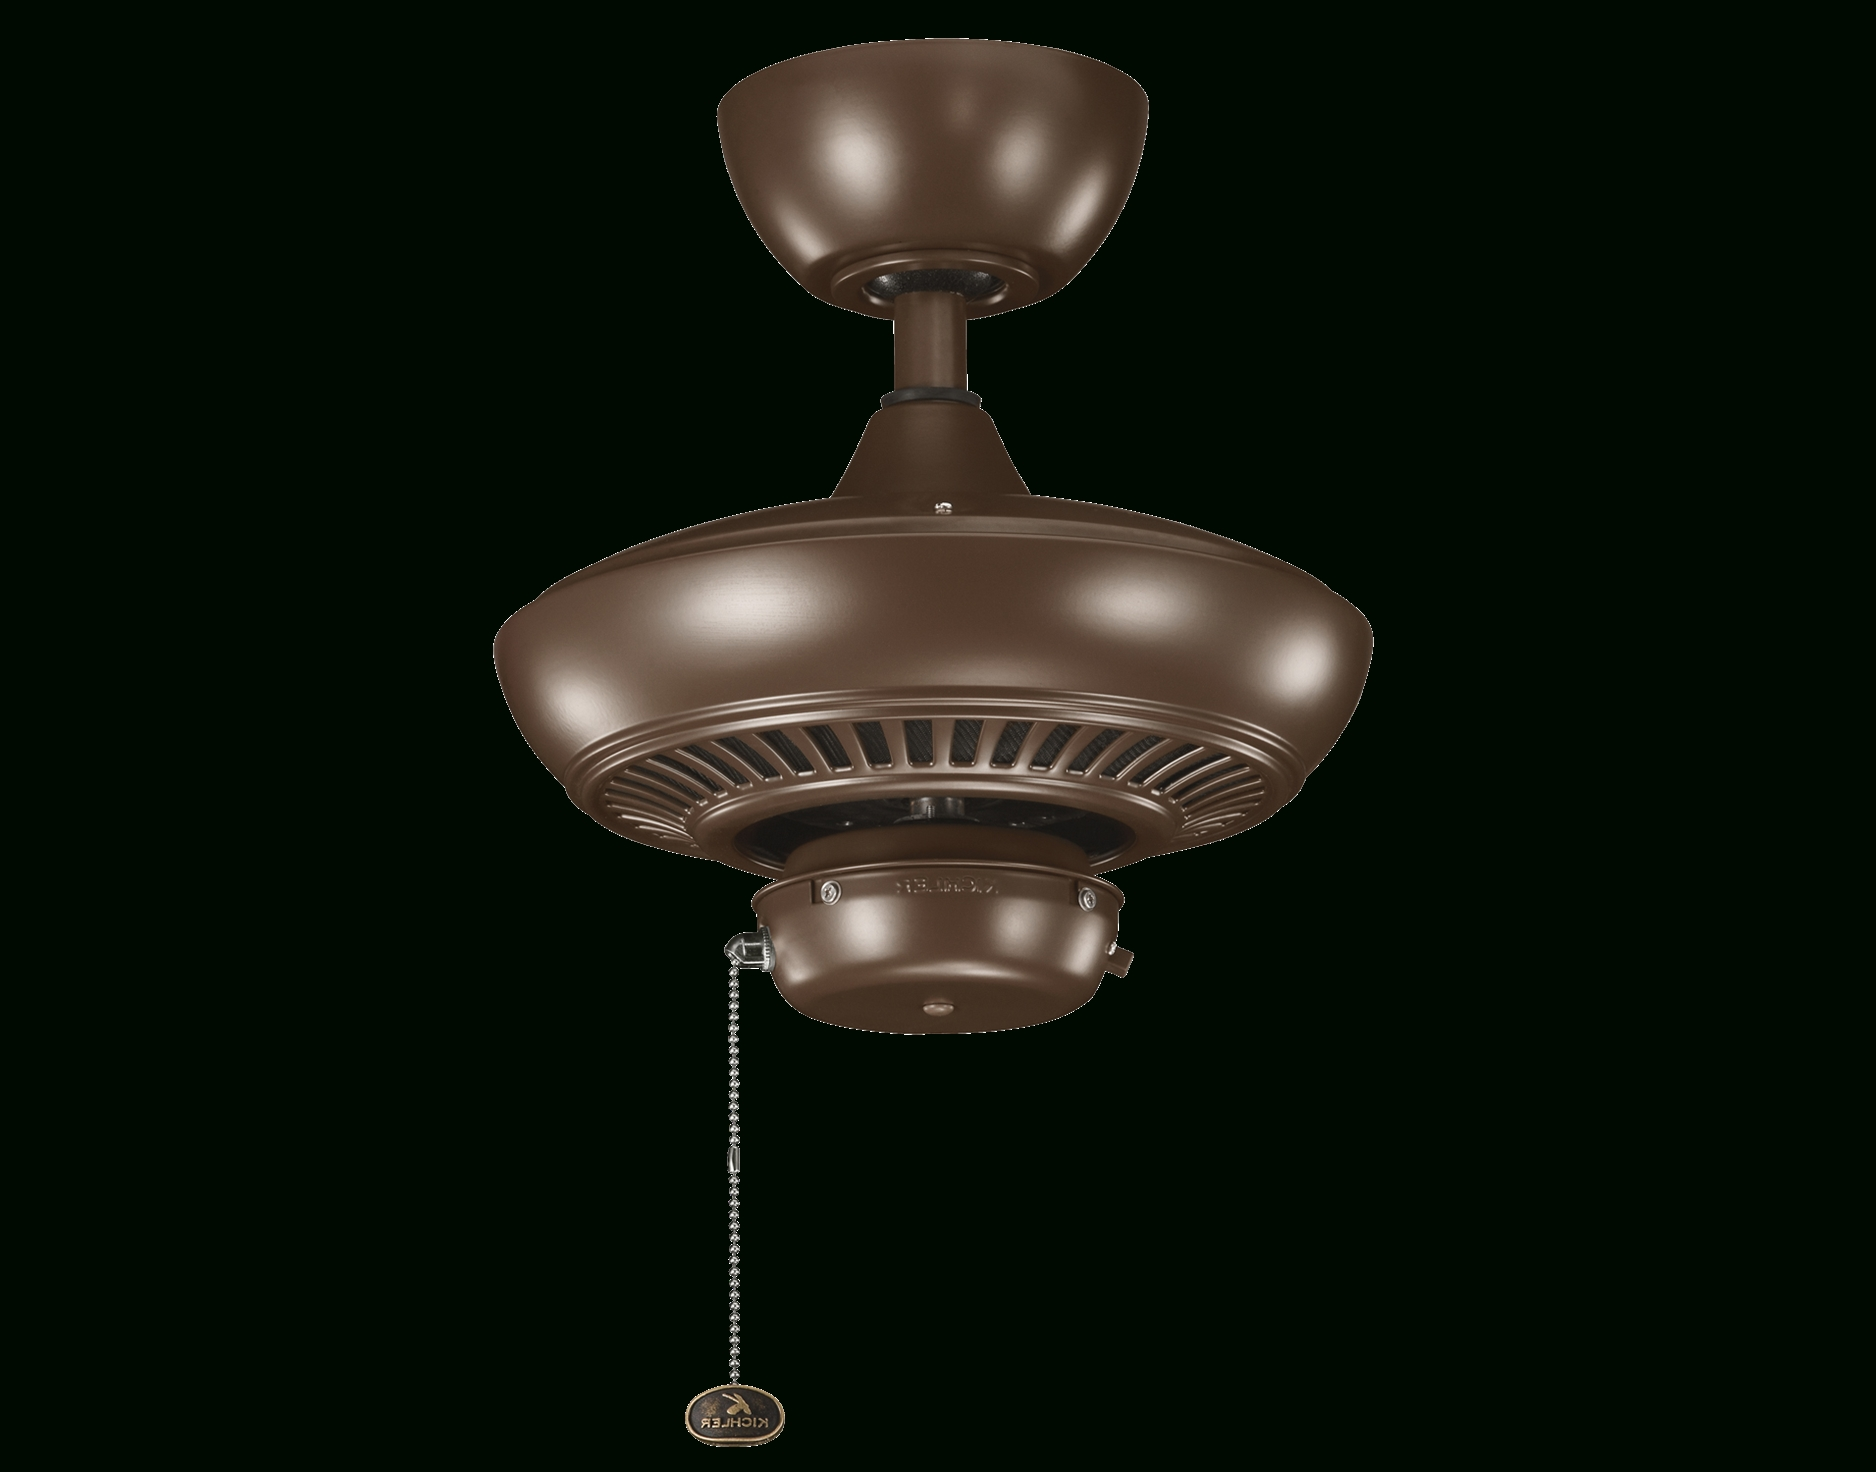 Outdoor Ceiling Fans With Pull Chain Within Well Known Awesome Outdoor Ceiling Light With Pull Chain – Divineducation (View 19 of 20)